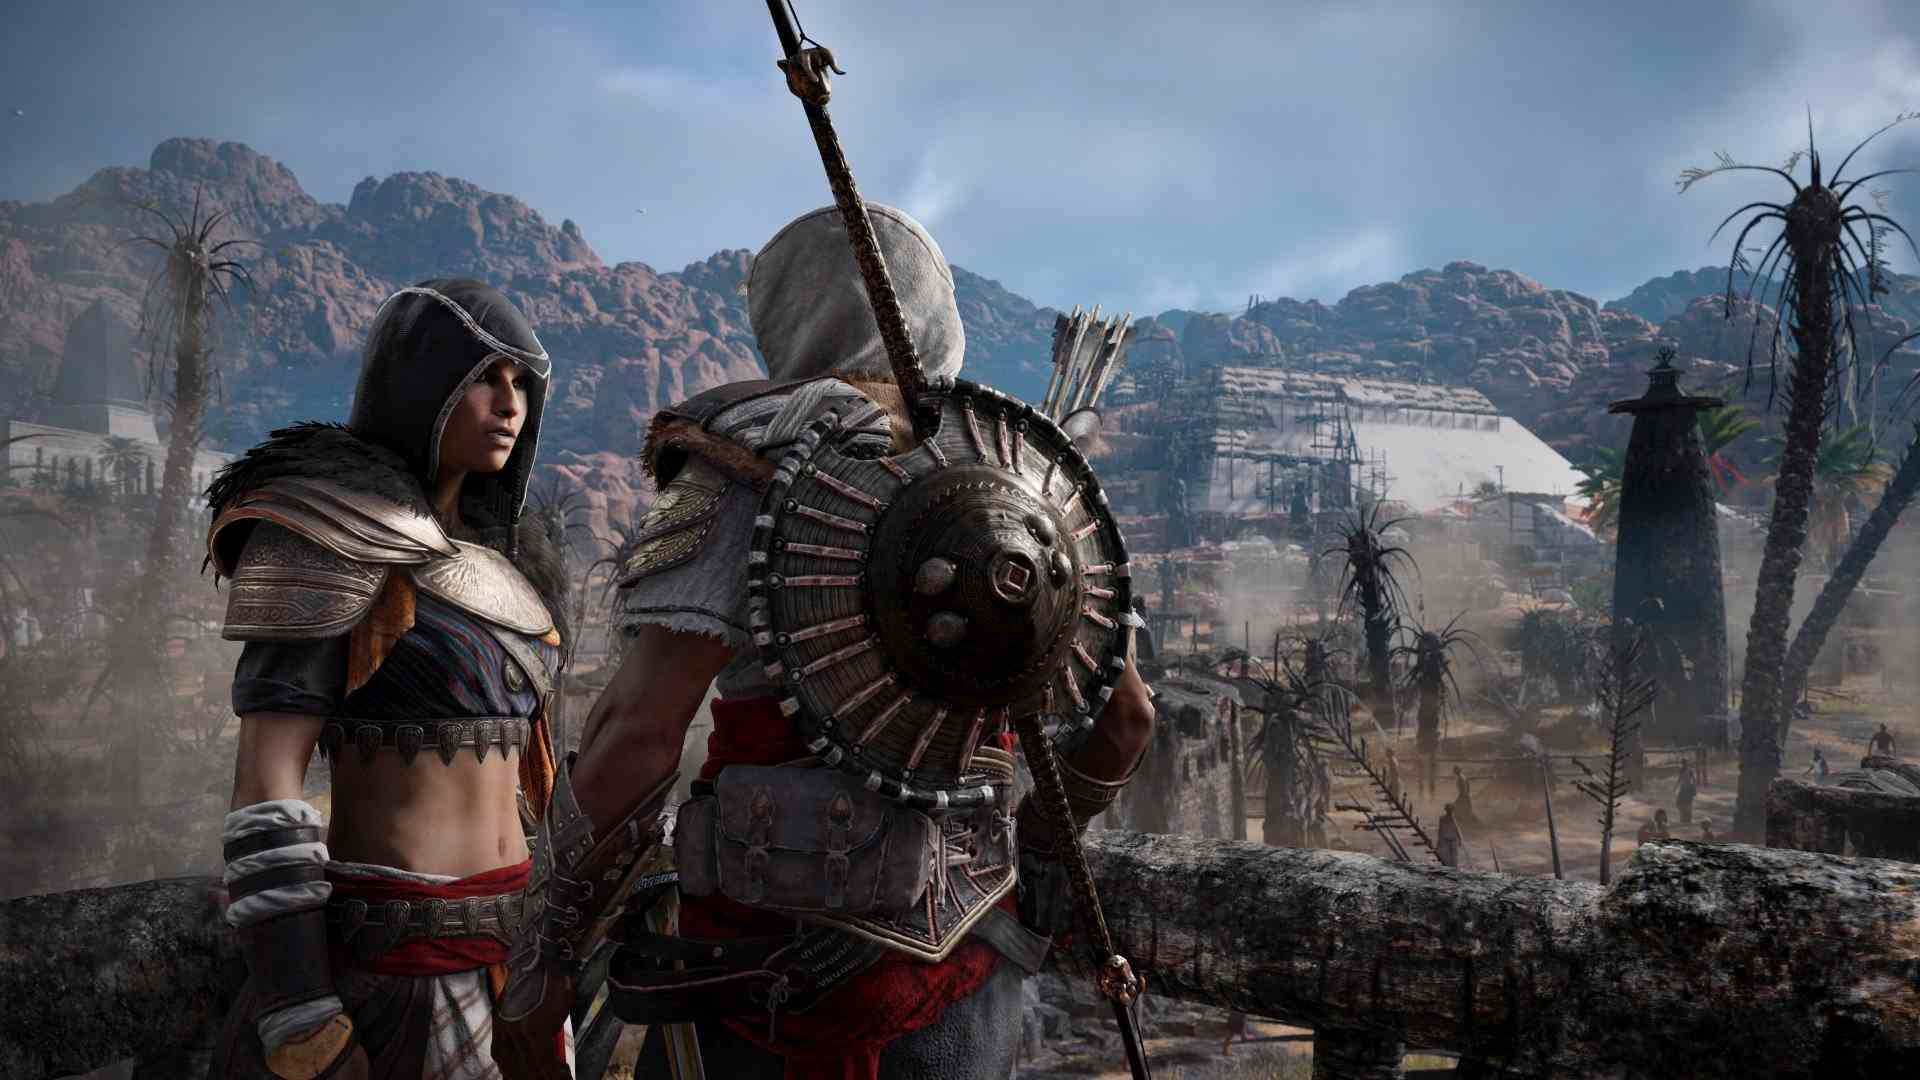 Assassin's Creed nome in codice Dynasty sarà ambientato in oriente?